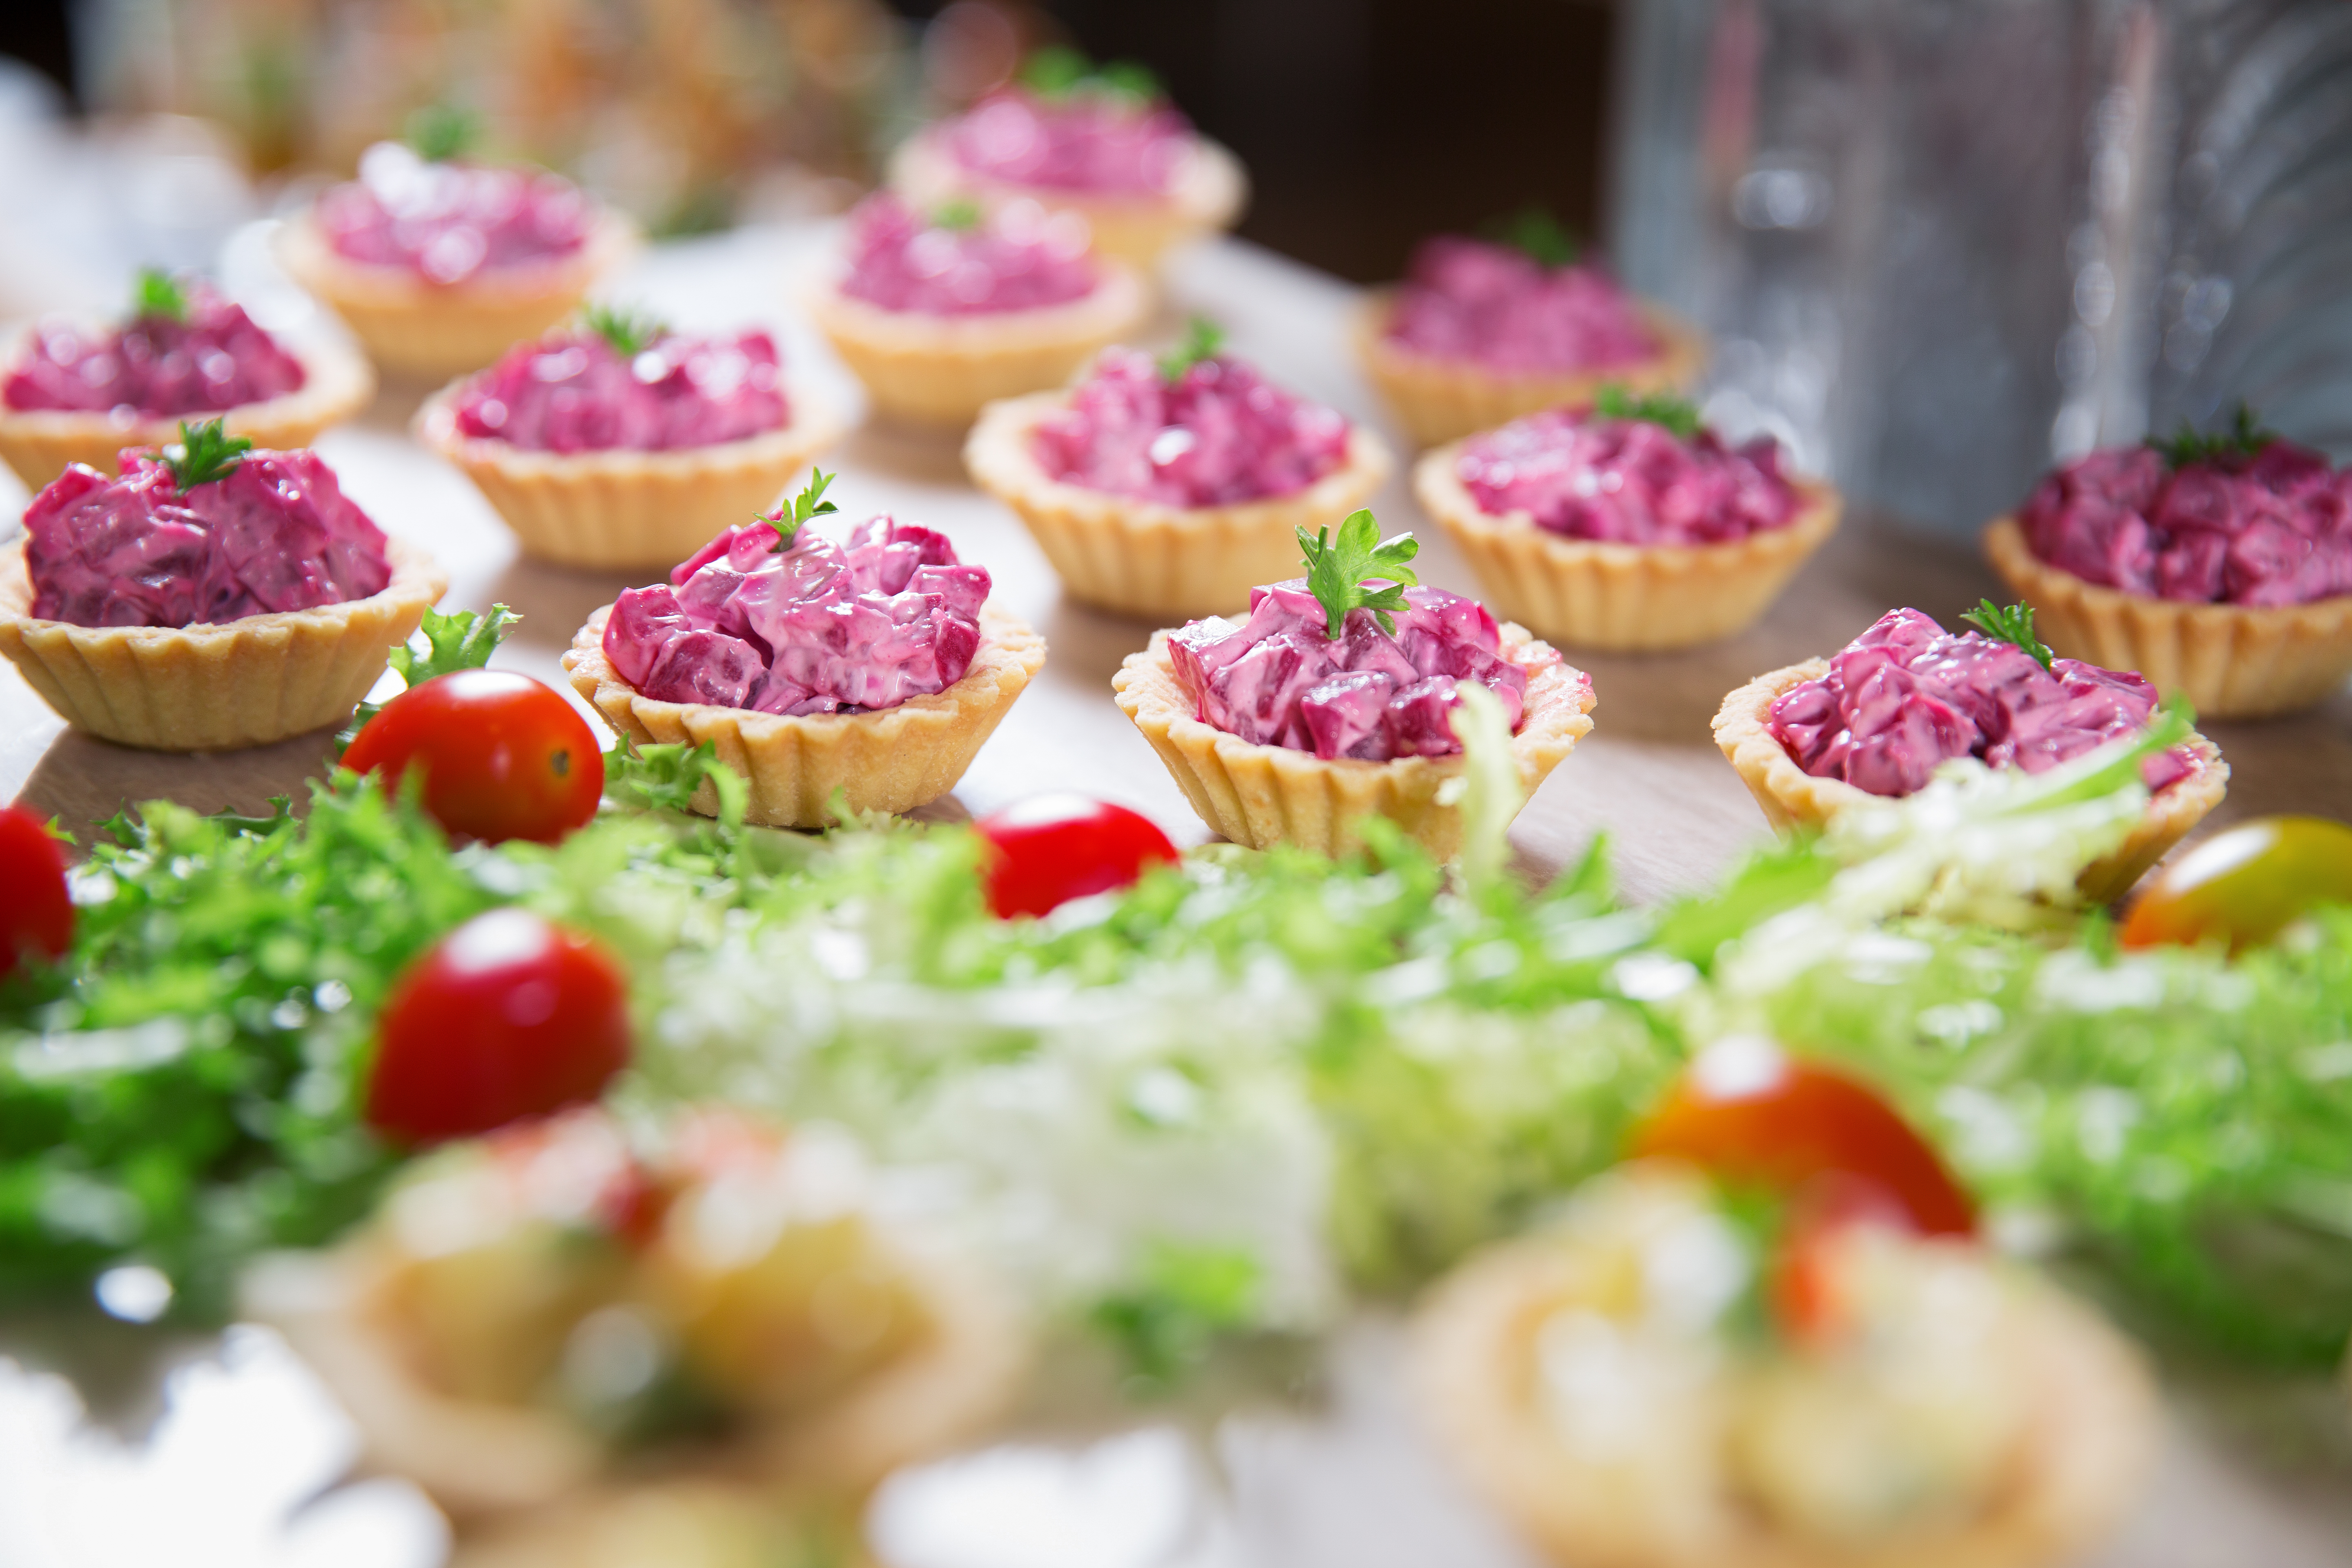 Delicious tartlets stuffed with beetroot salad on buffet table. Catering concept